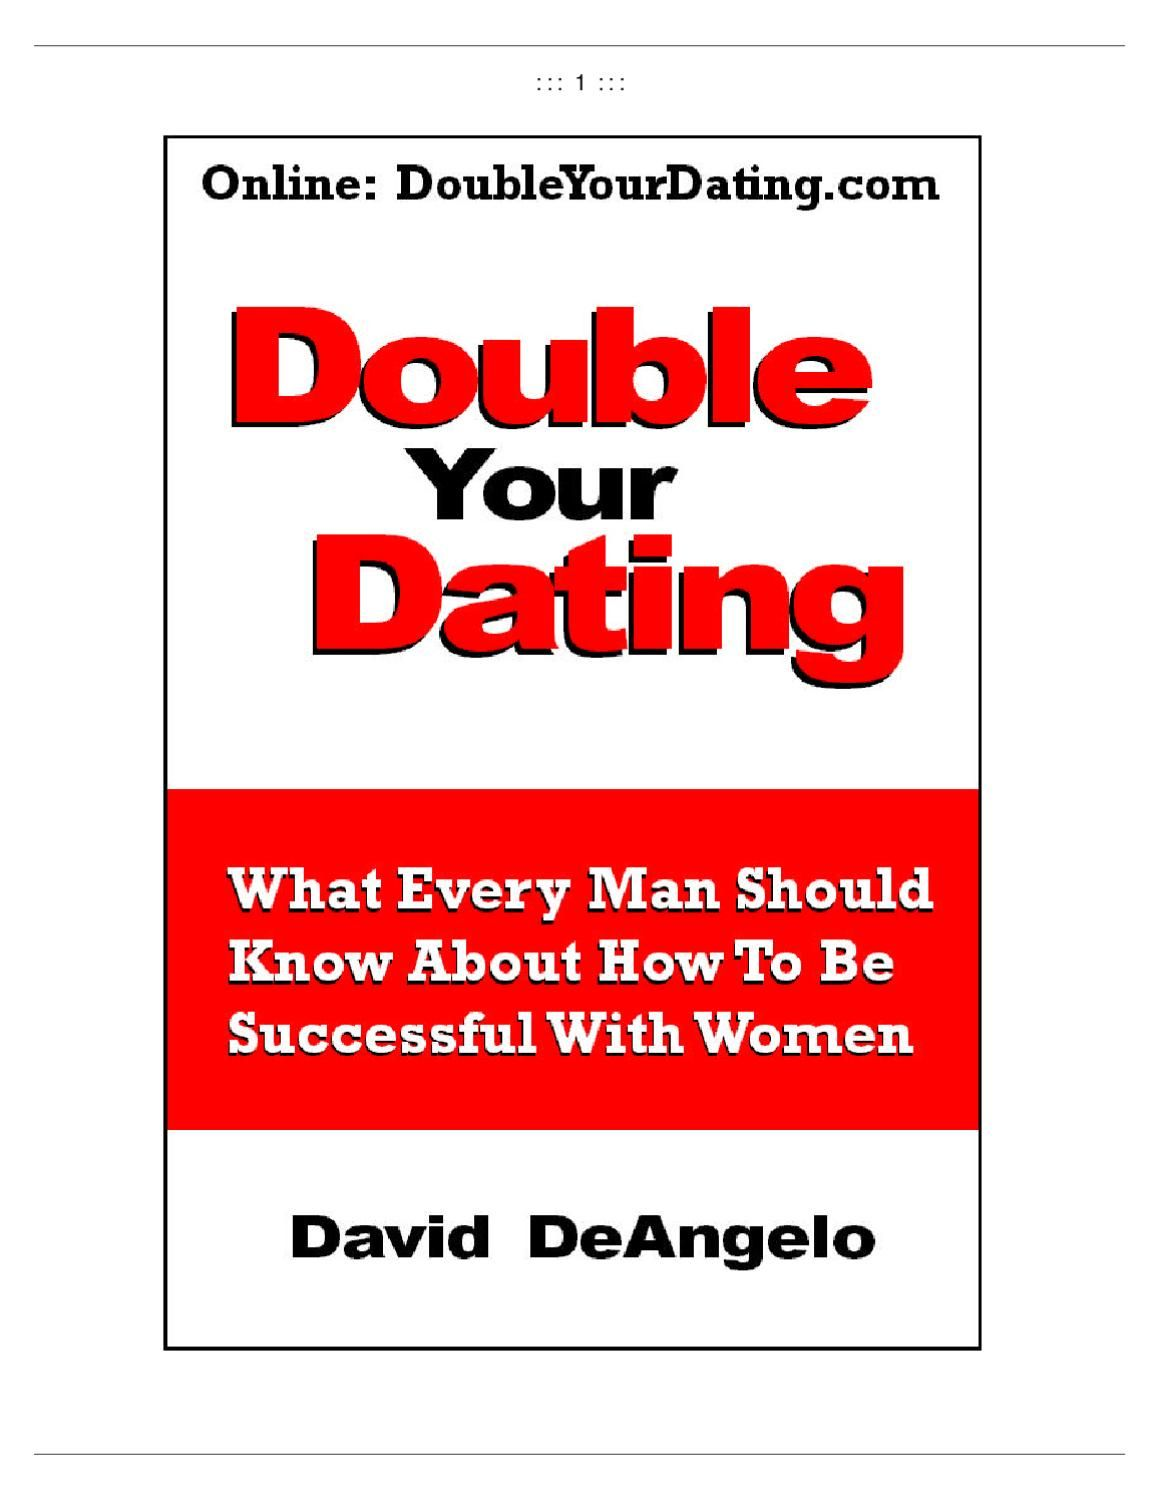 double your dating recommended books